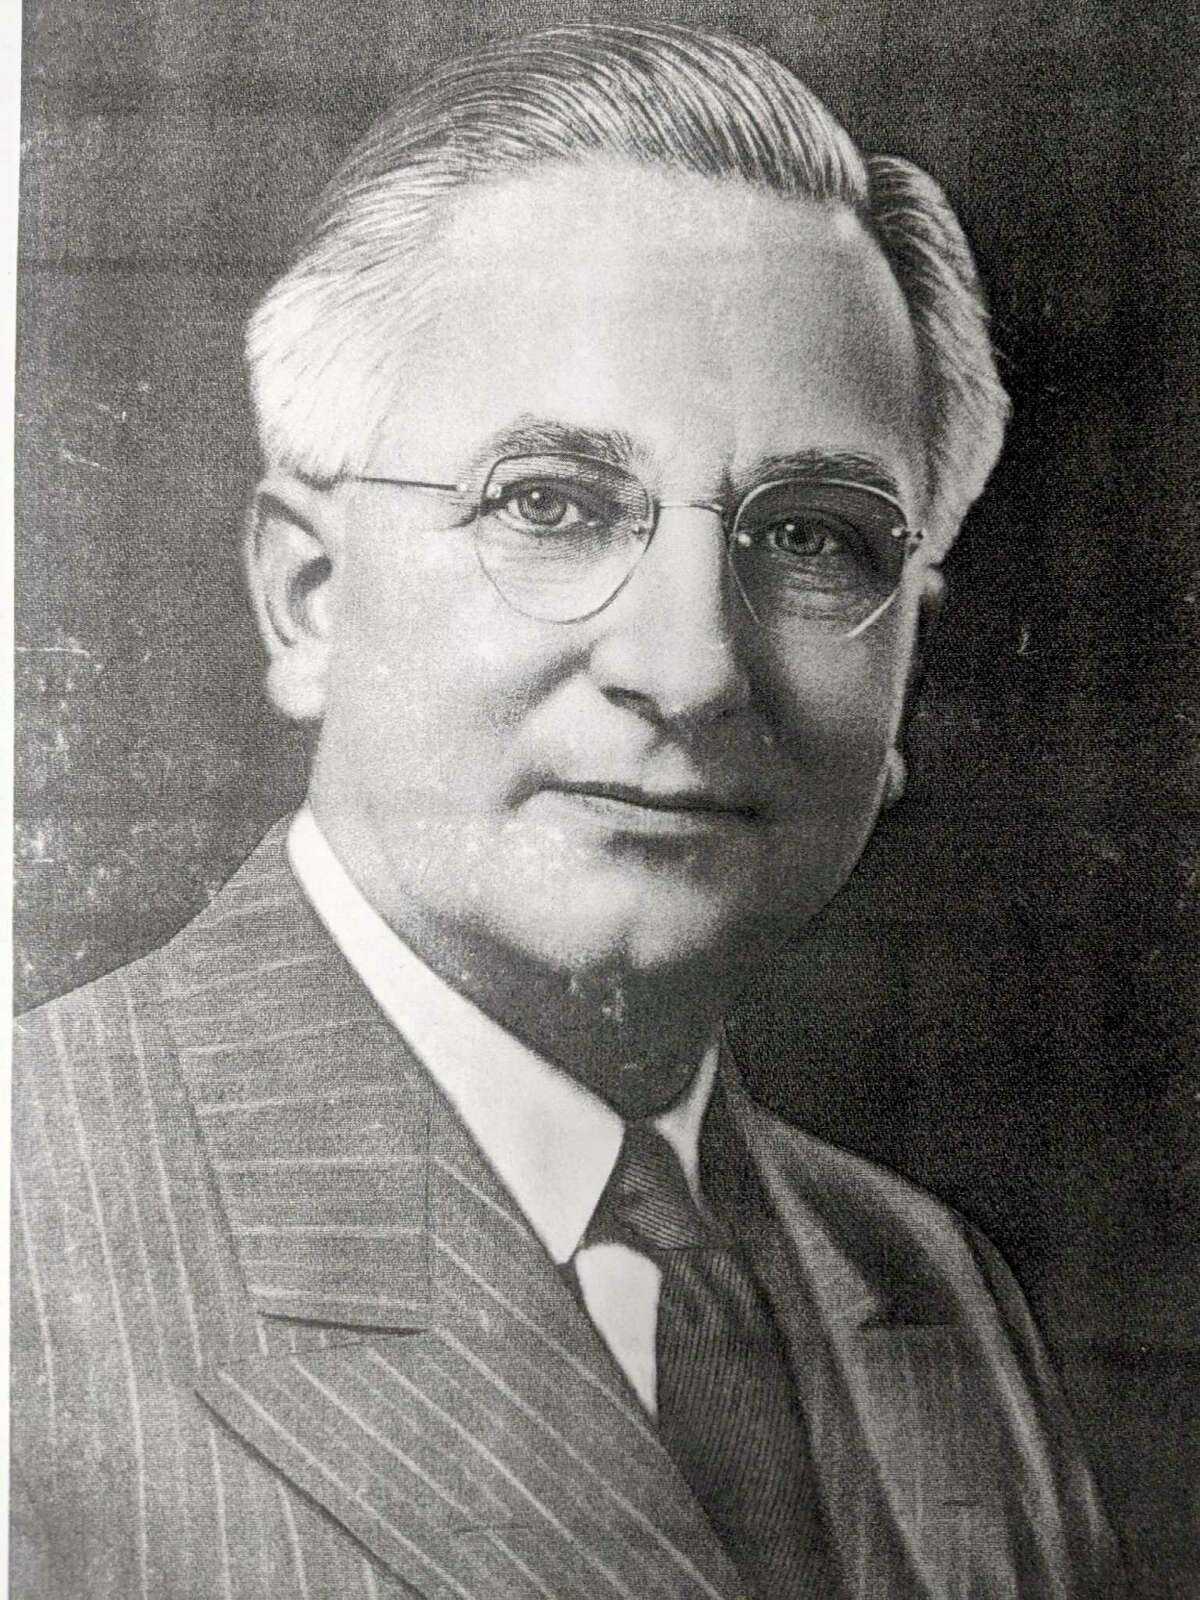 This is Willard Dow, son of Dr. Herbert Henry Dow. In 1930, at the age of 33, Willard Dow became president of The Dow Chemical Company, guiding it and the small town of Midland through the Depression and World War II. His untimely death at the age of 52 was mourned by thousands of people.